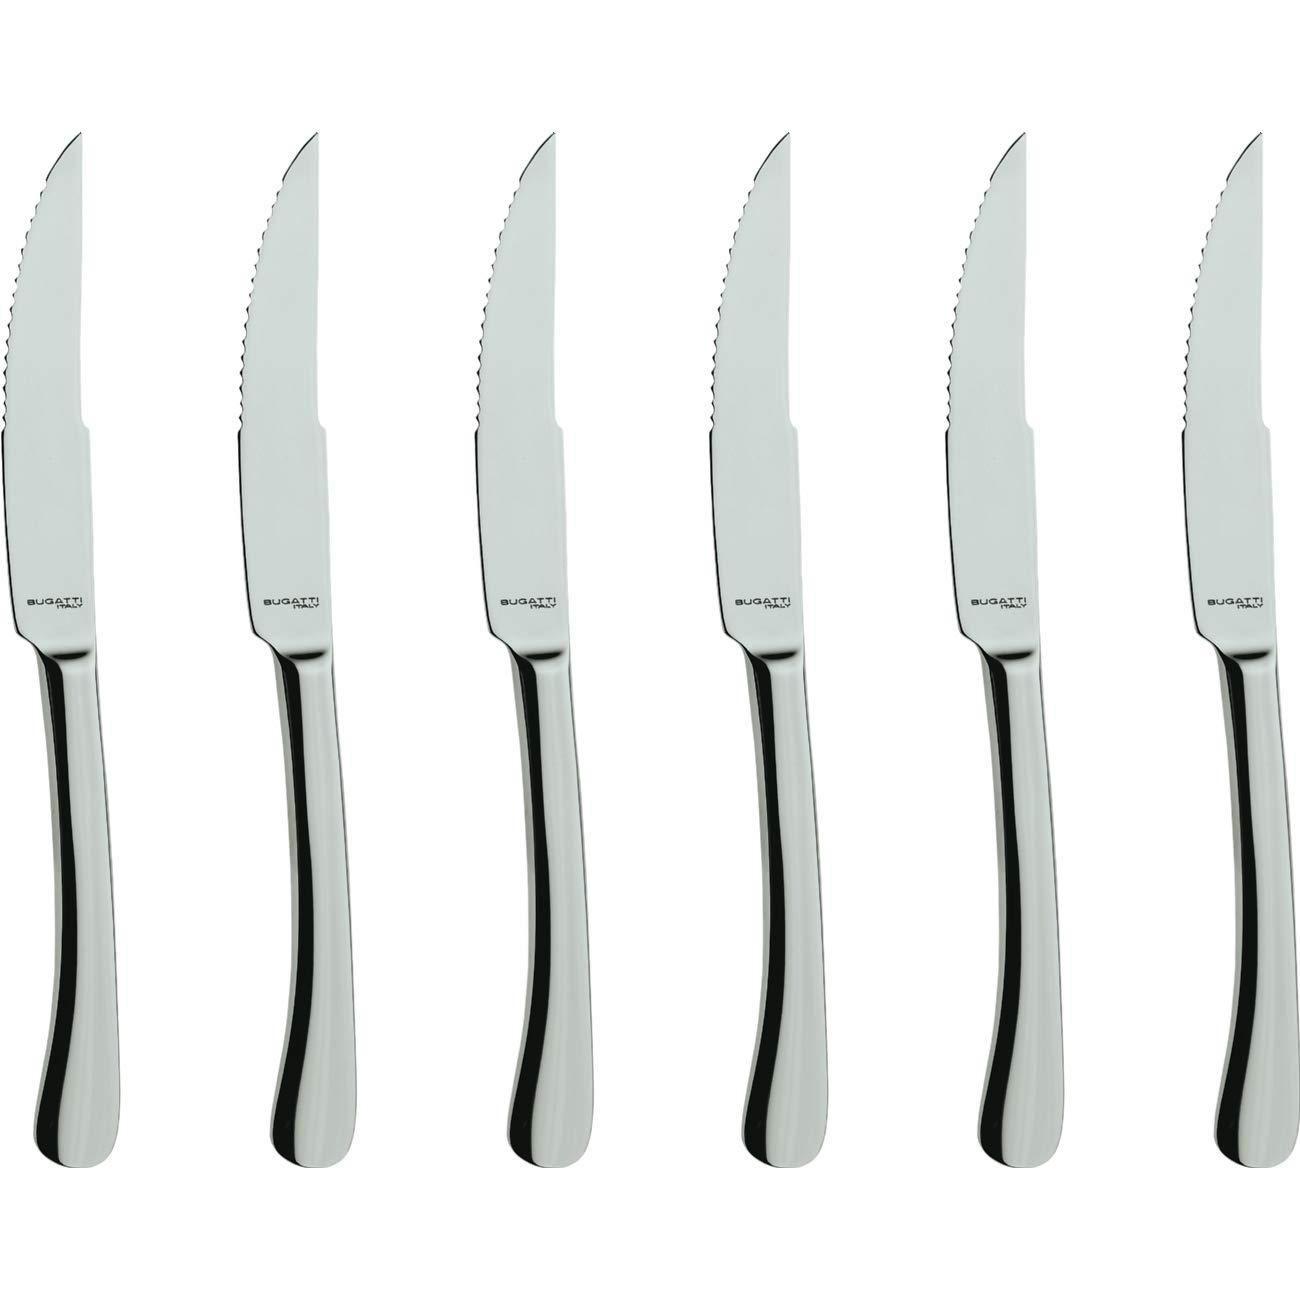 Bugatti - Settimo Cielo 6 Steak Knives